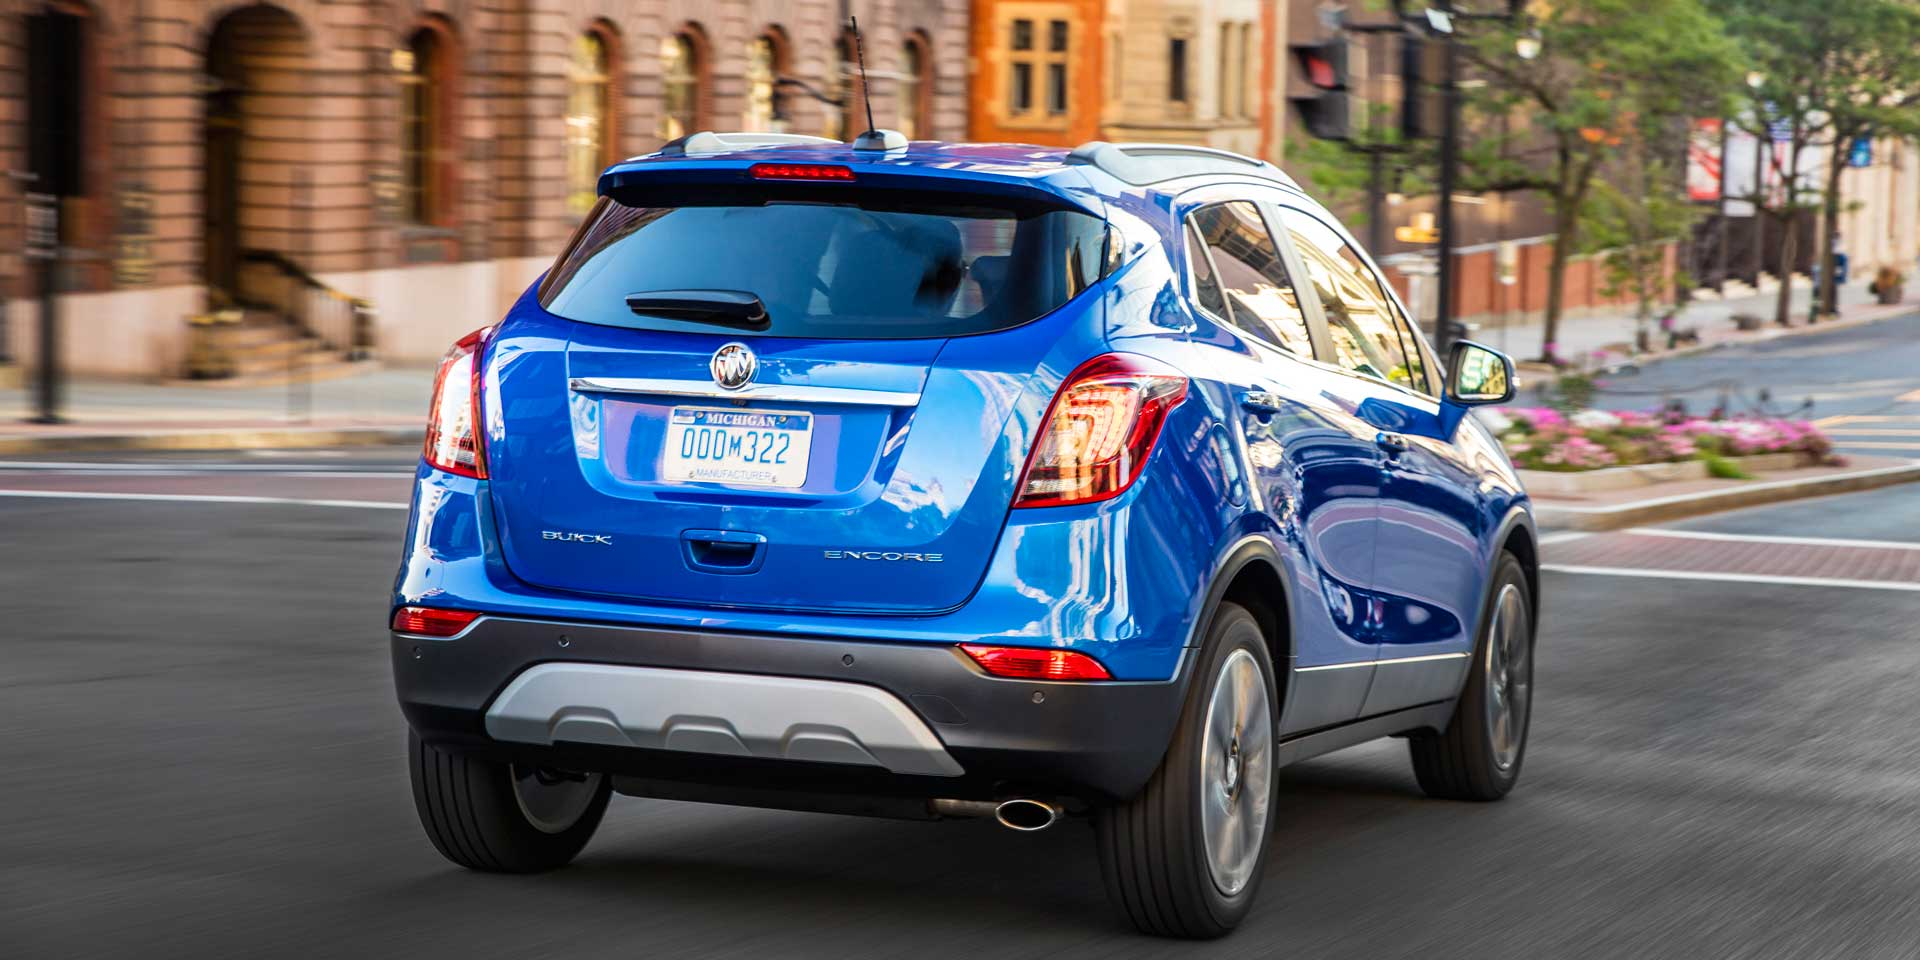 2019 - Buick - Encore - Vehicles on Display | Chicago Auto ...